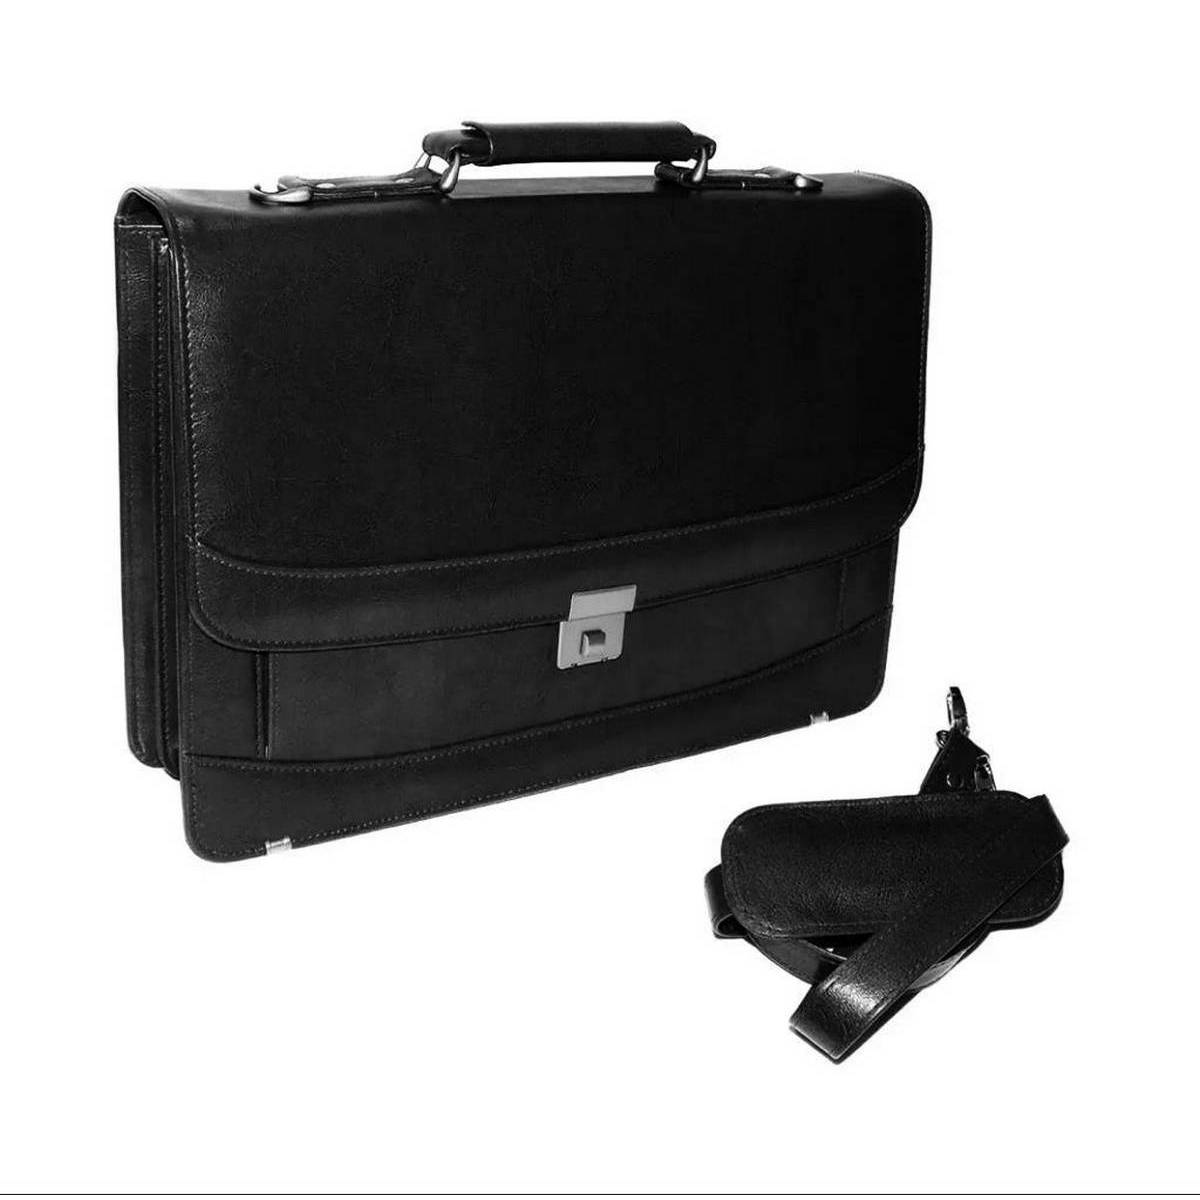 Briefcase Laptop Bag Folder Accessories Leatherette With Number Lock For Office and Travel - Black